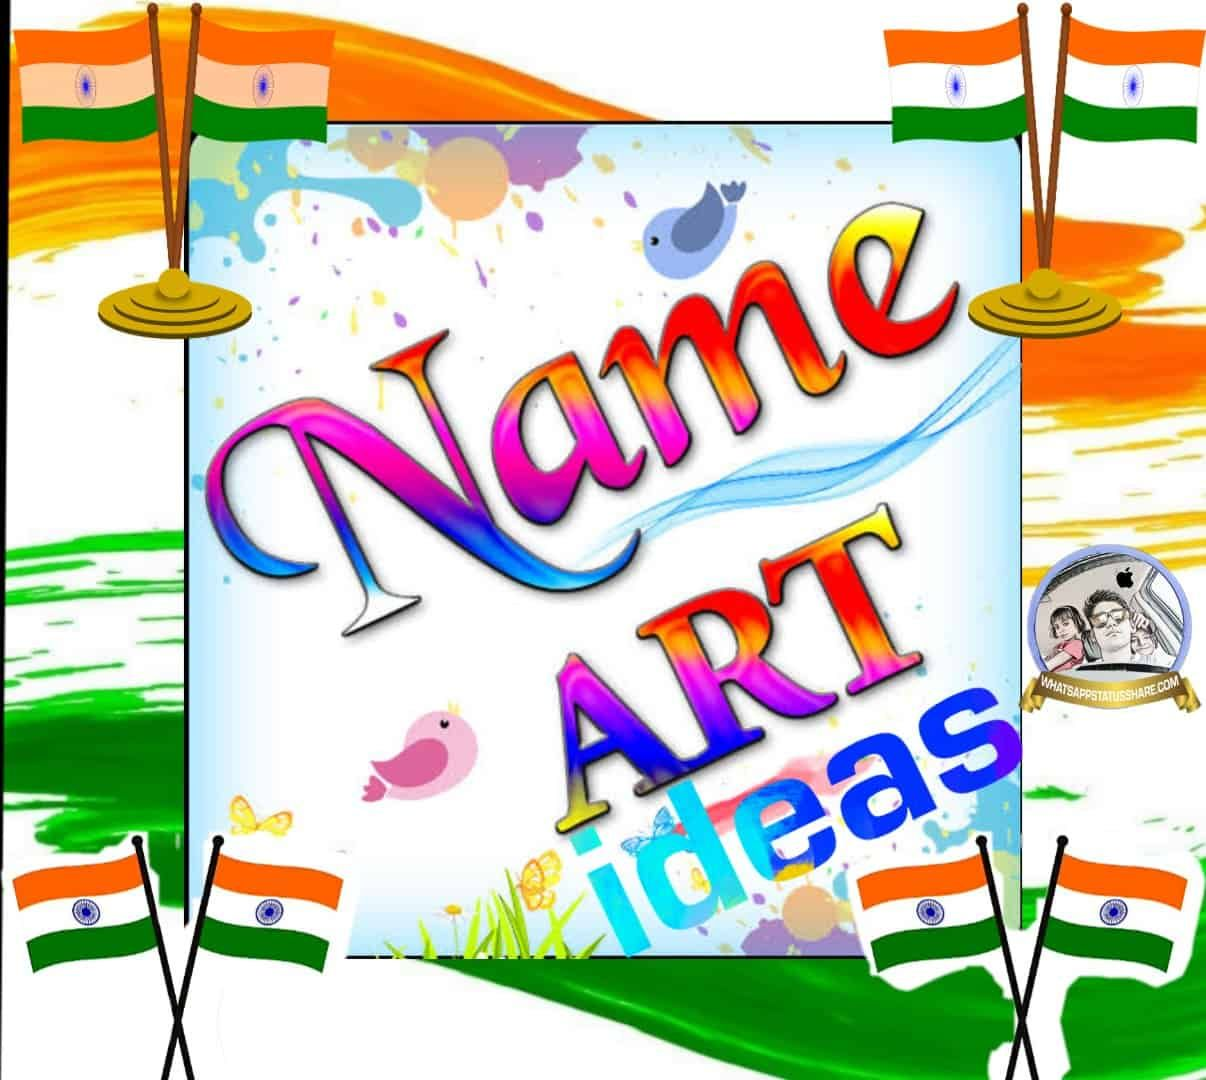 Name Art Ideas How To Make Best Name Art For Ideas 5000 Whatsapp Status Video Download 2020 New For Free Name Art Kids Name Art Baby Name Art